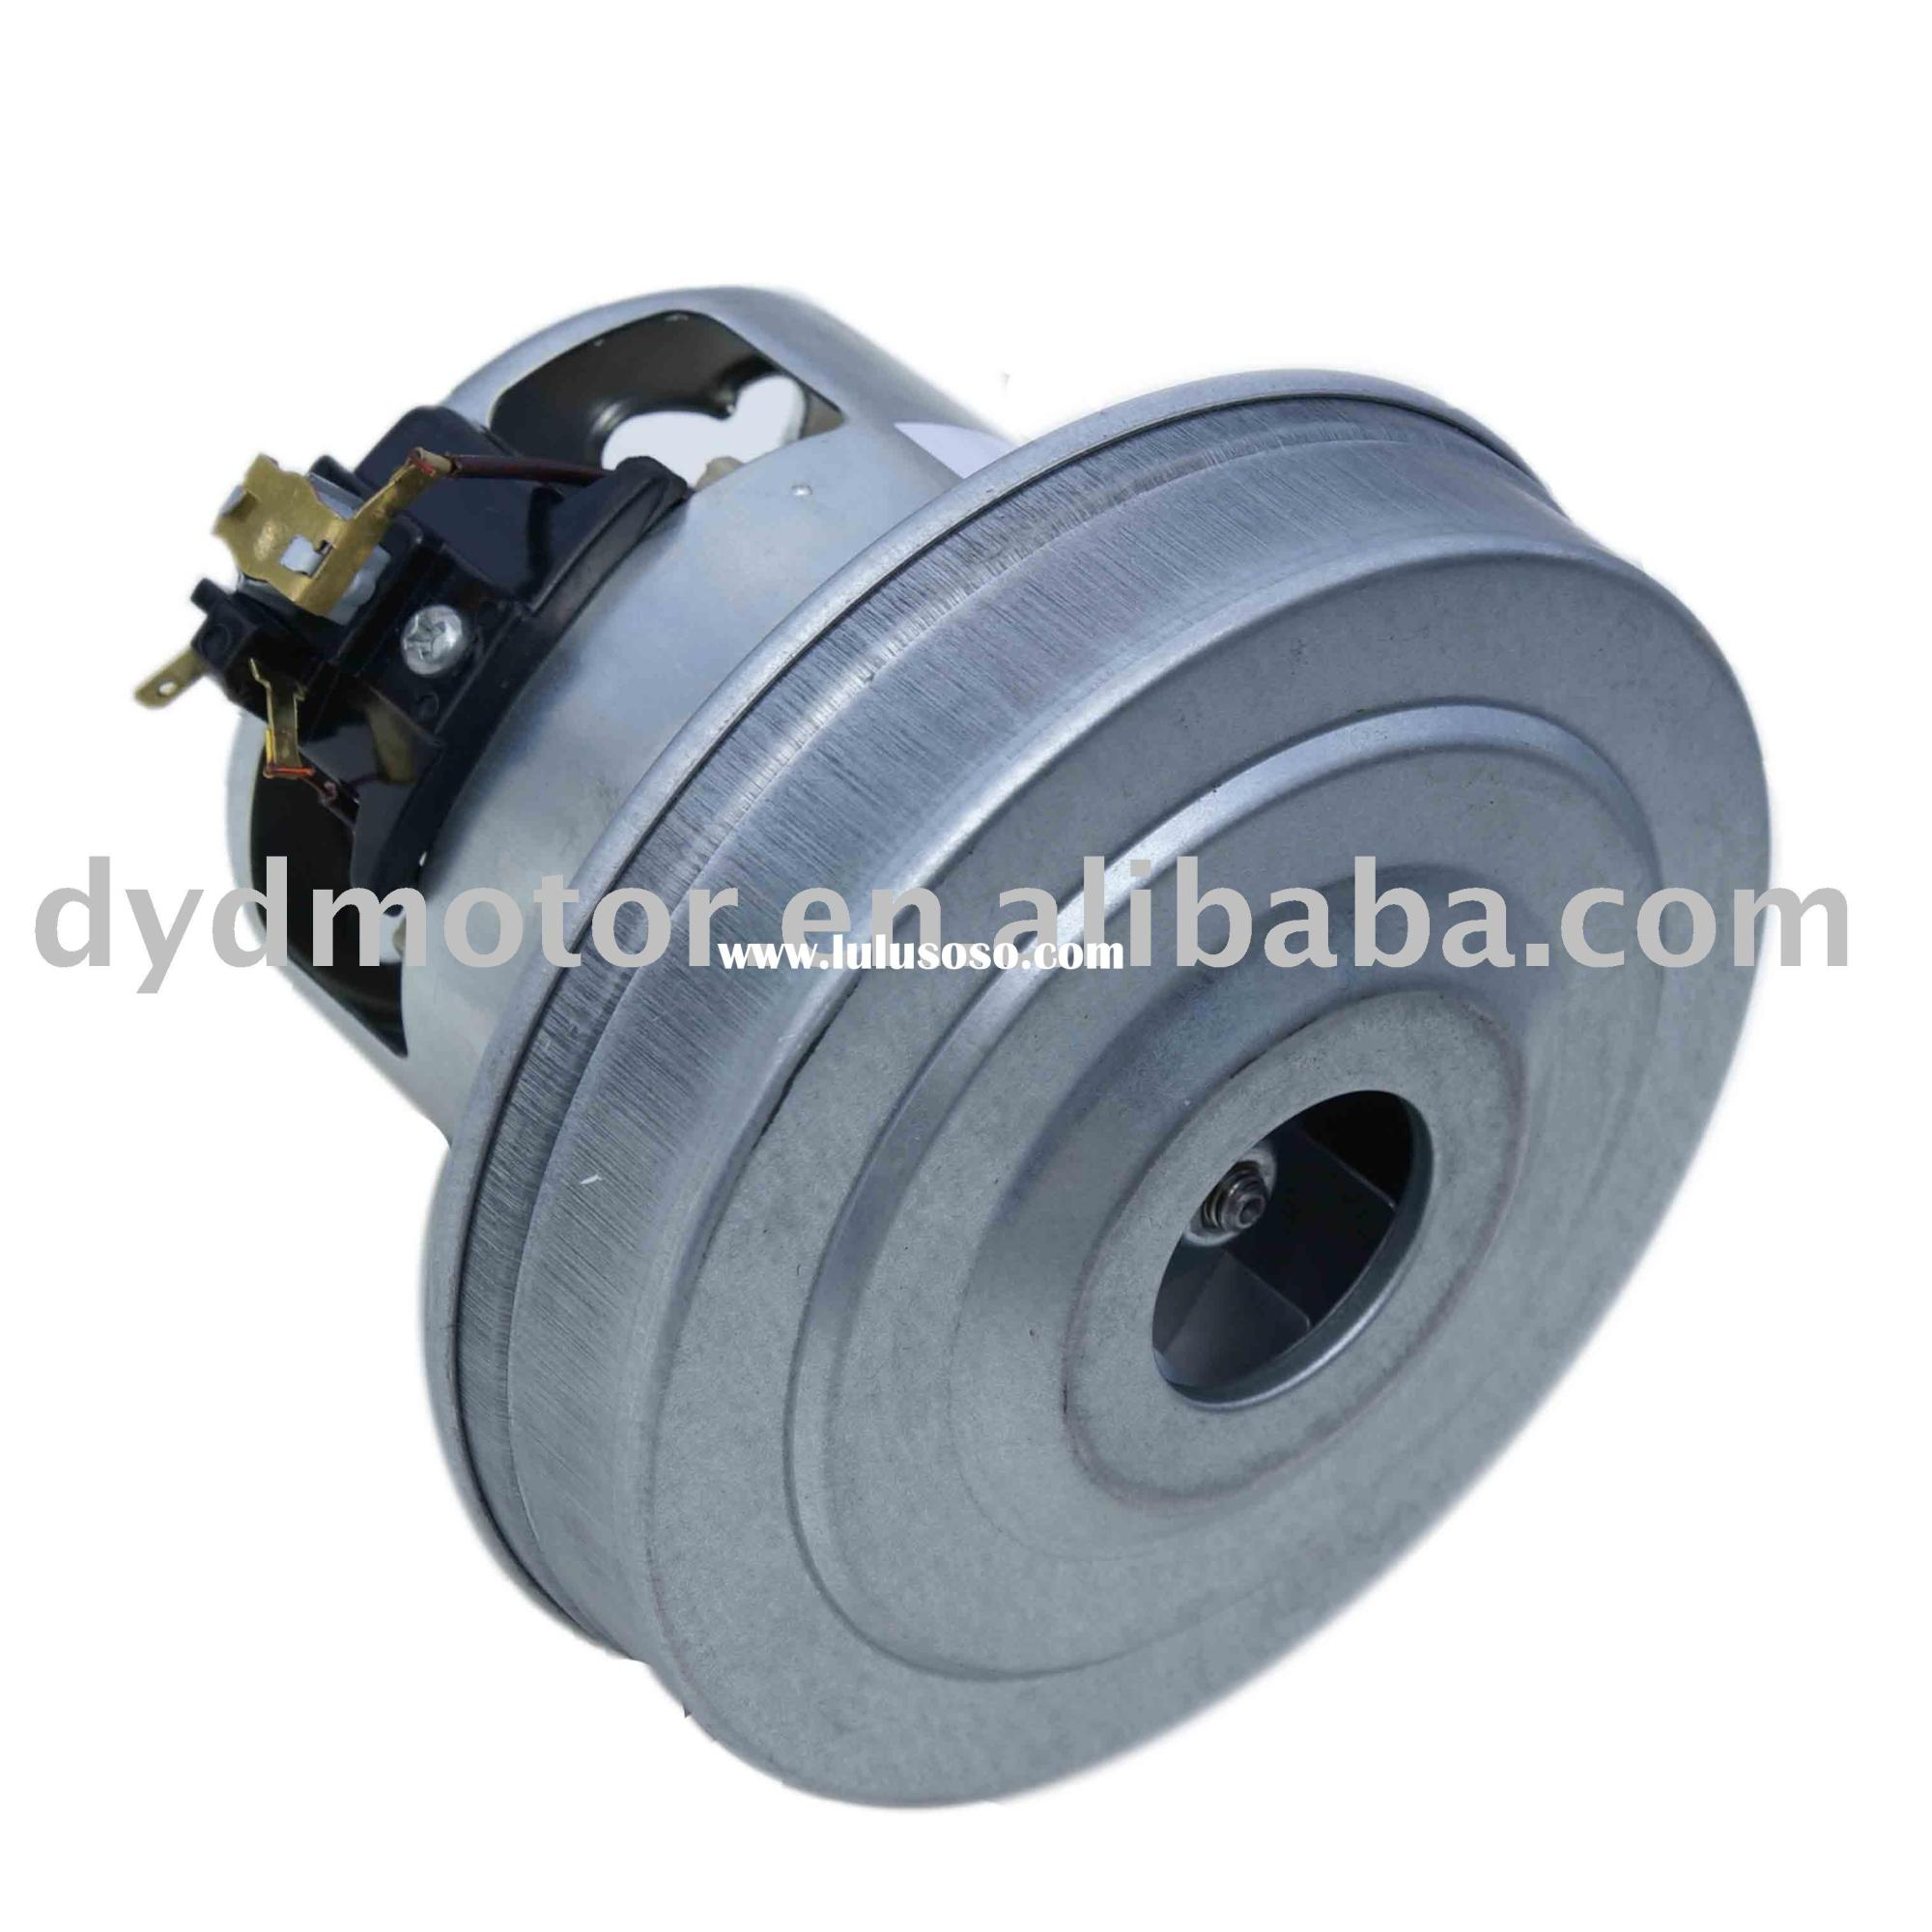 hight resolution of vacuum cleaner motor ac universal motor carbon brush motor